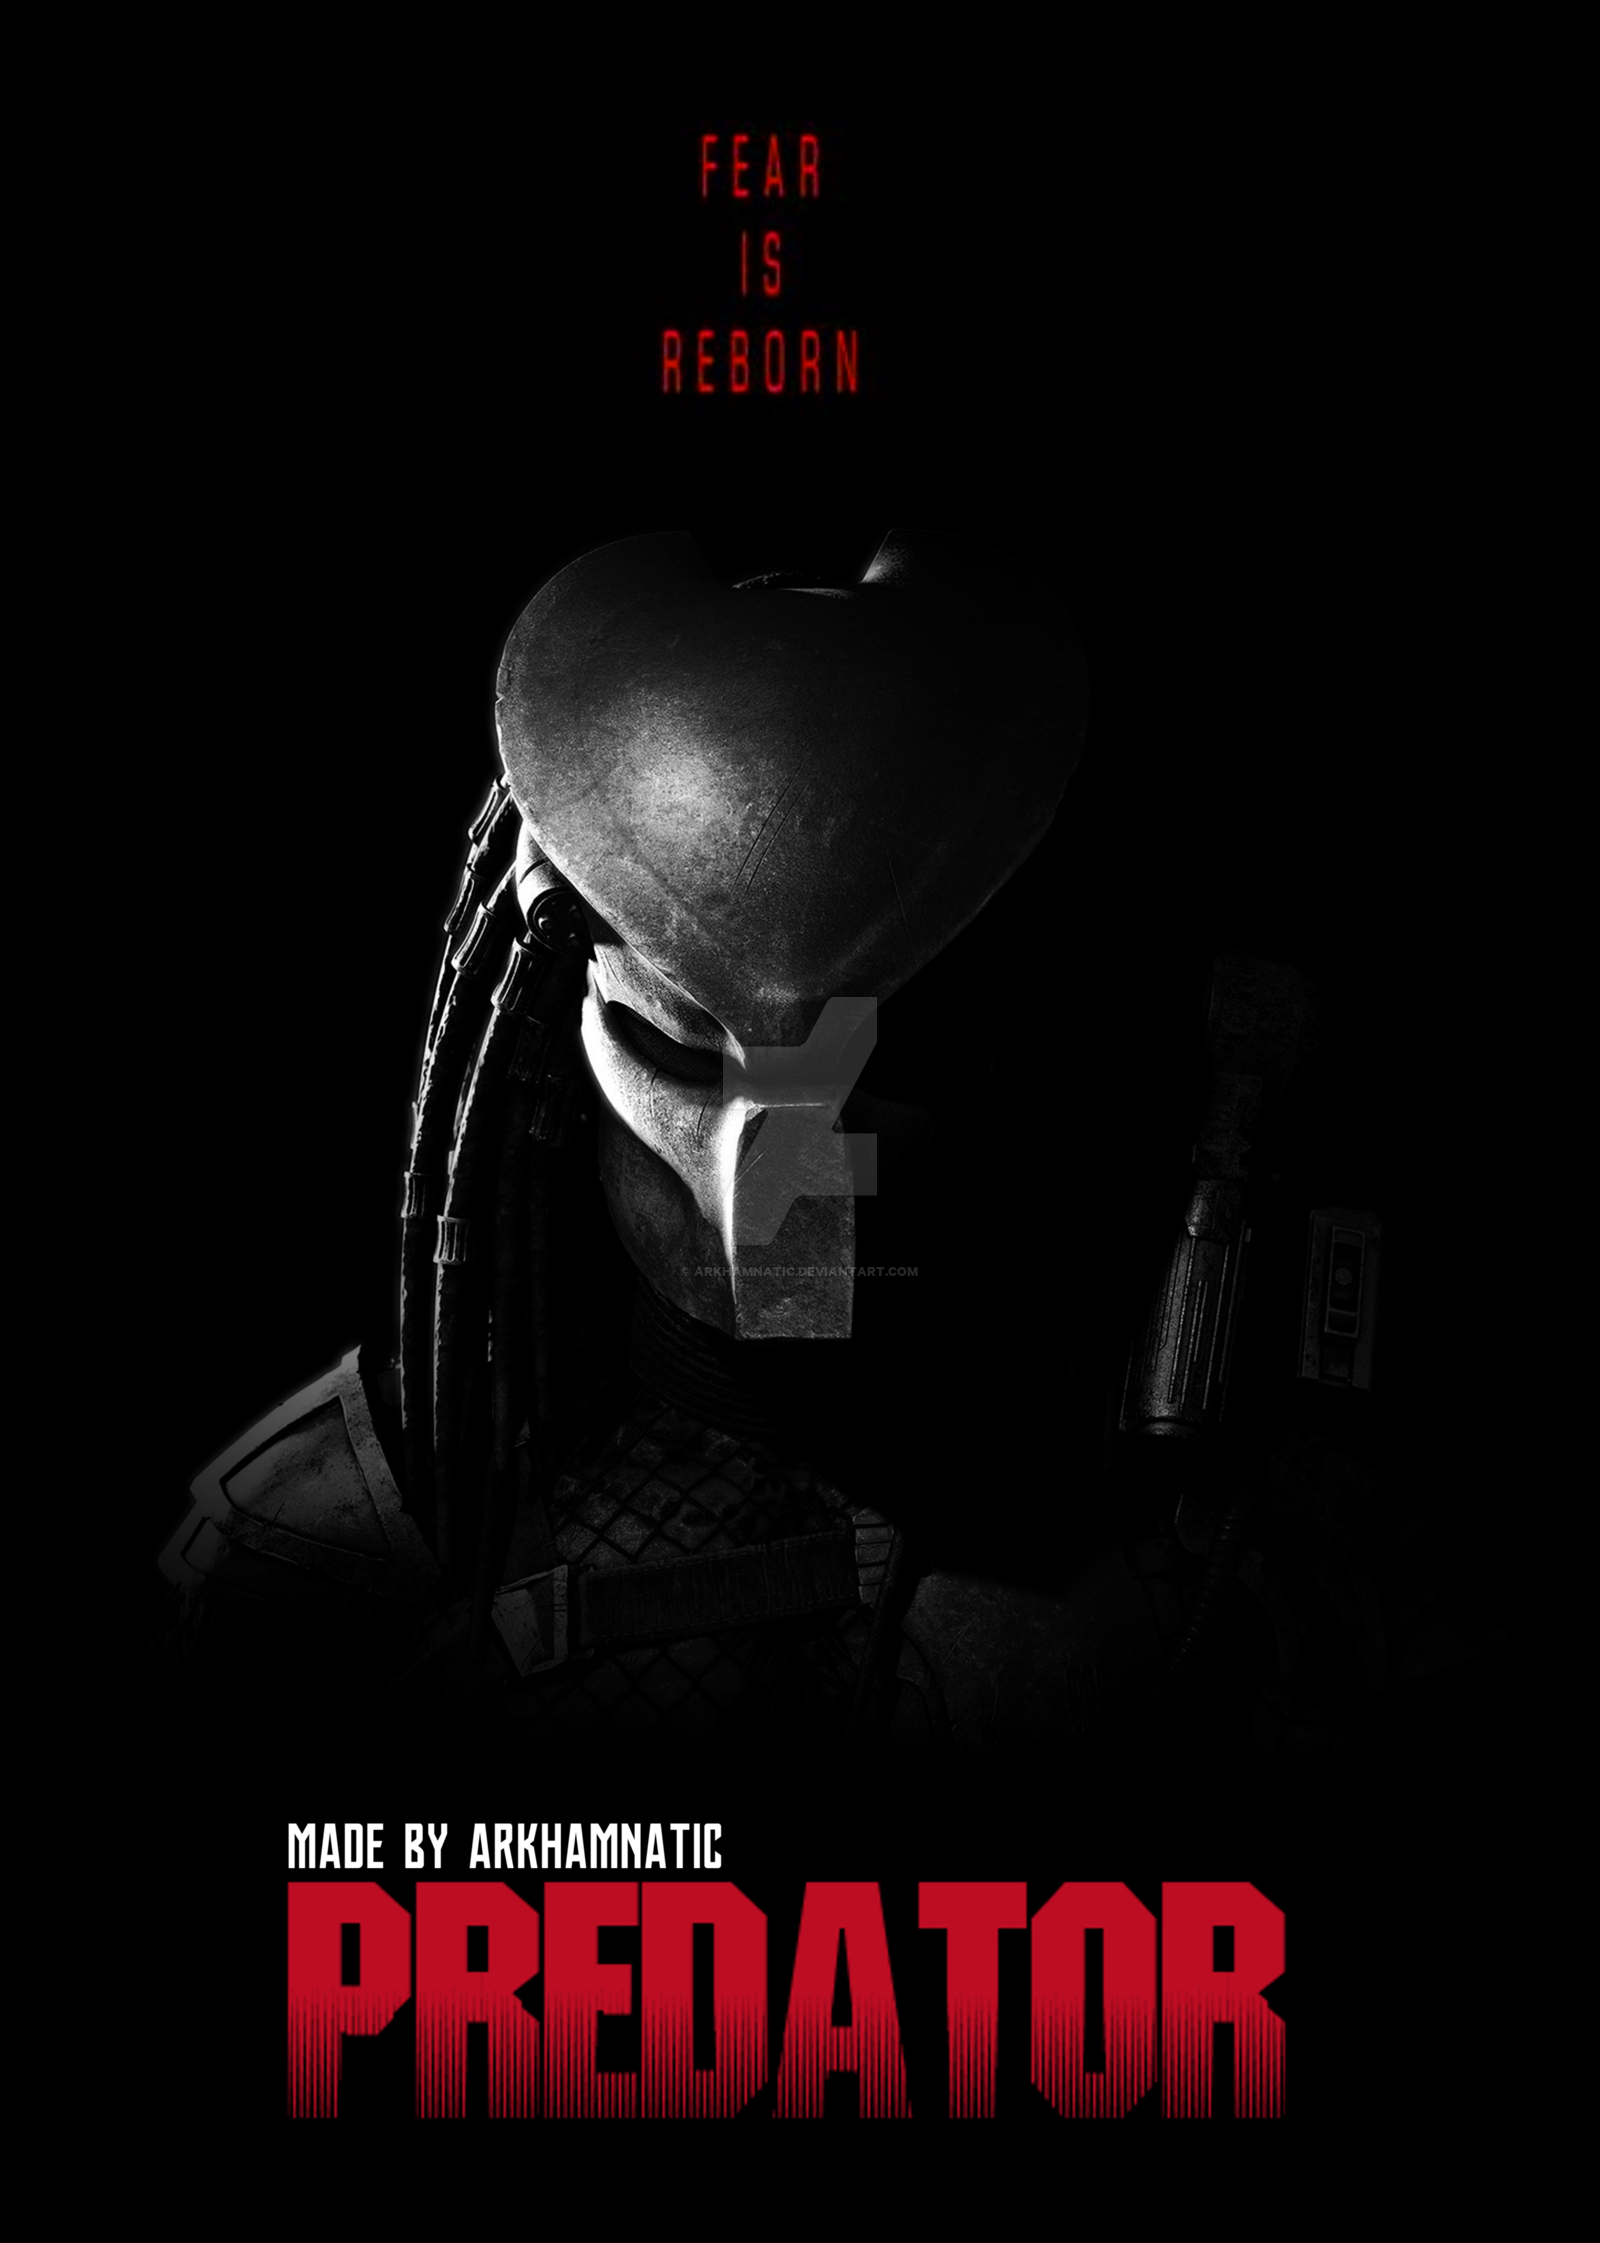 The Predator Movie Poster 2018 By Arkhamnatic Posters In 2019